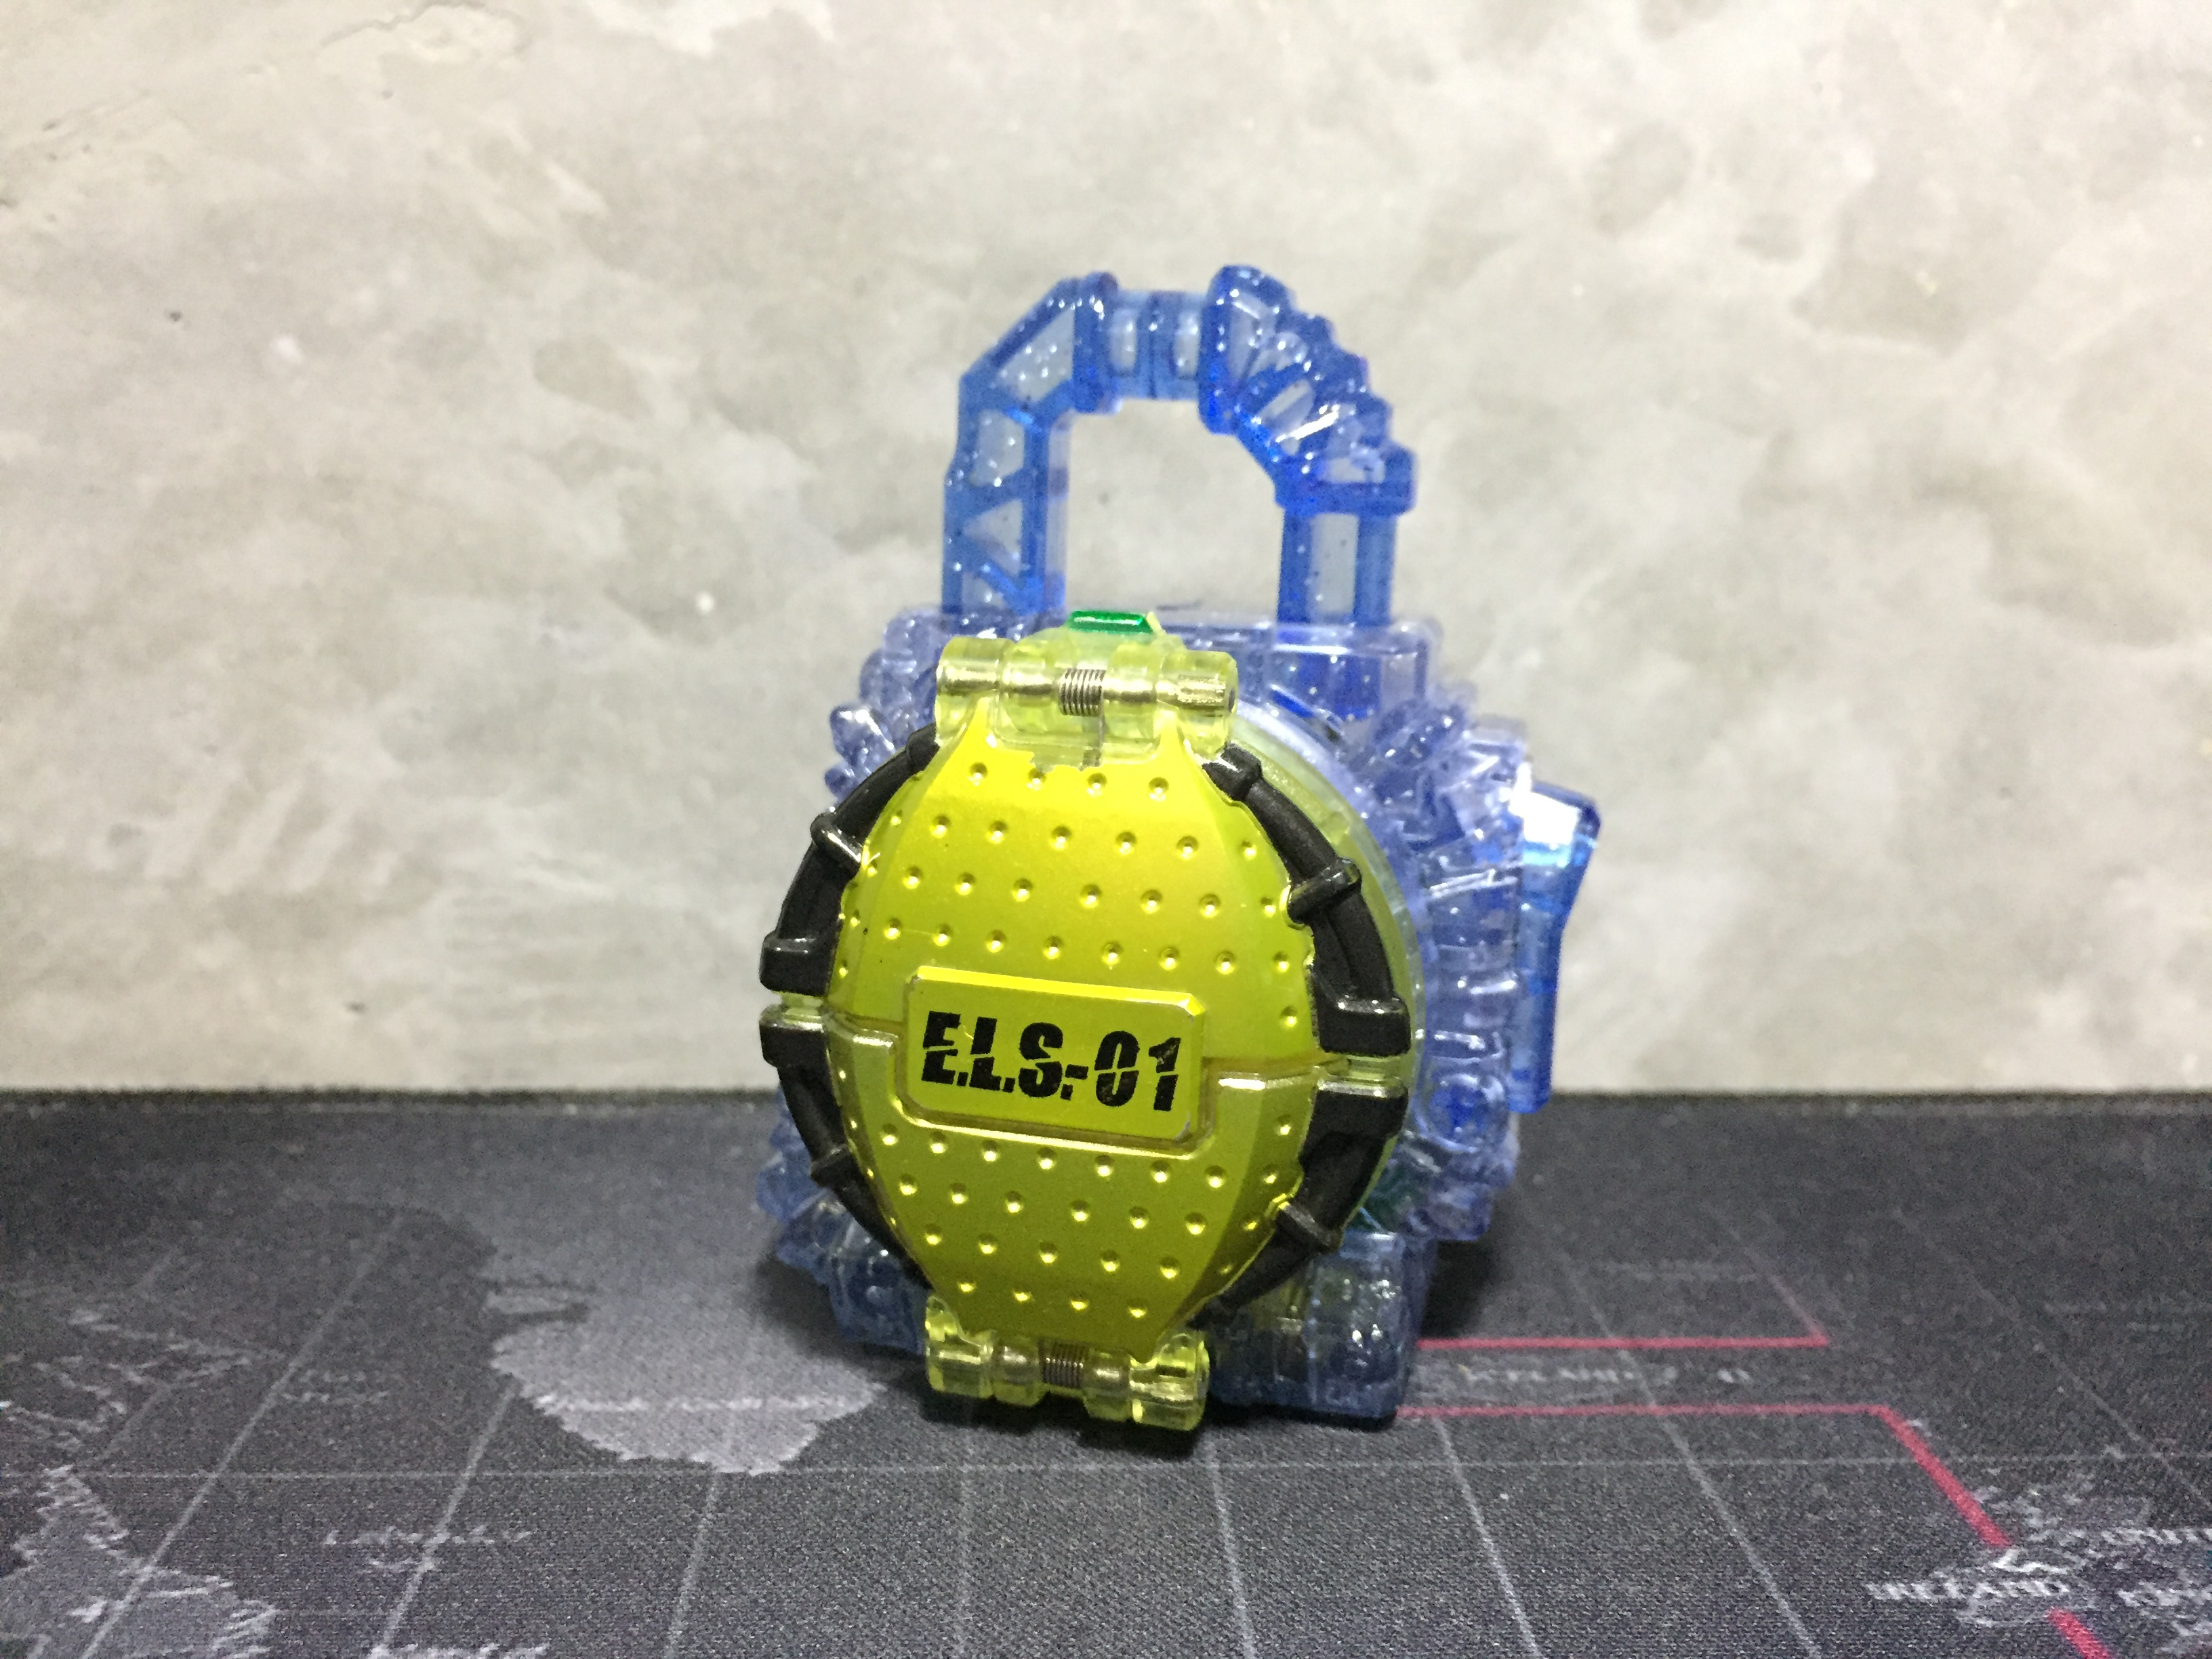 Kamen Rider Gaim DX ELS.-01 Lemon Energy Lock Seed (มะนาว)